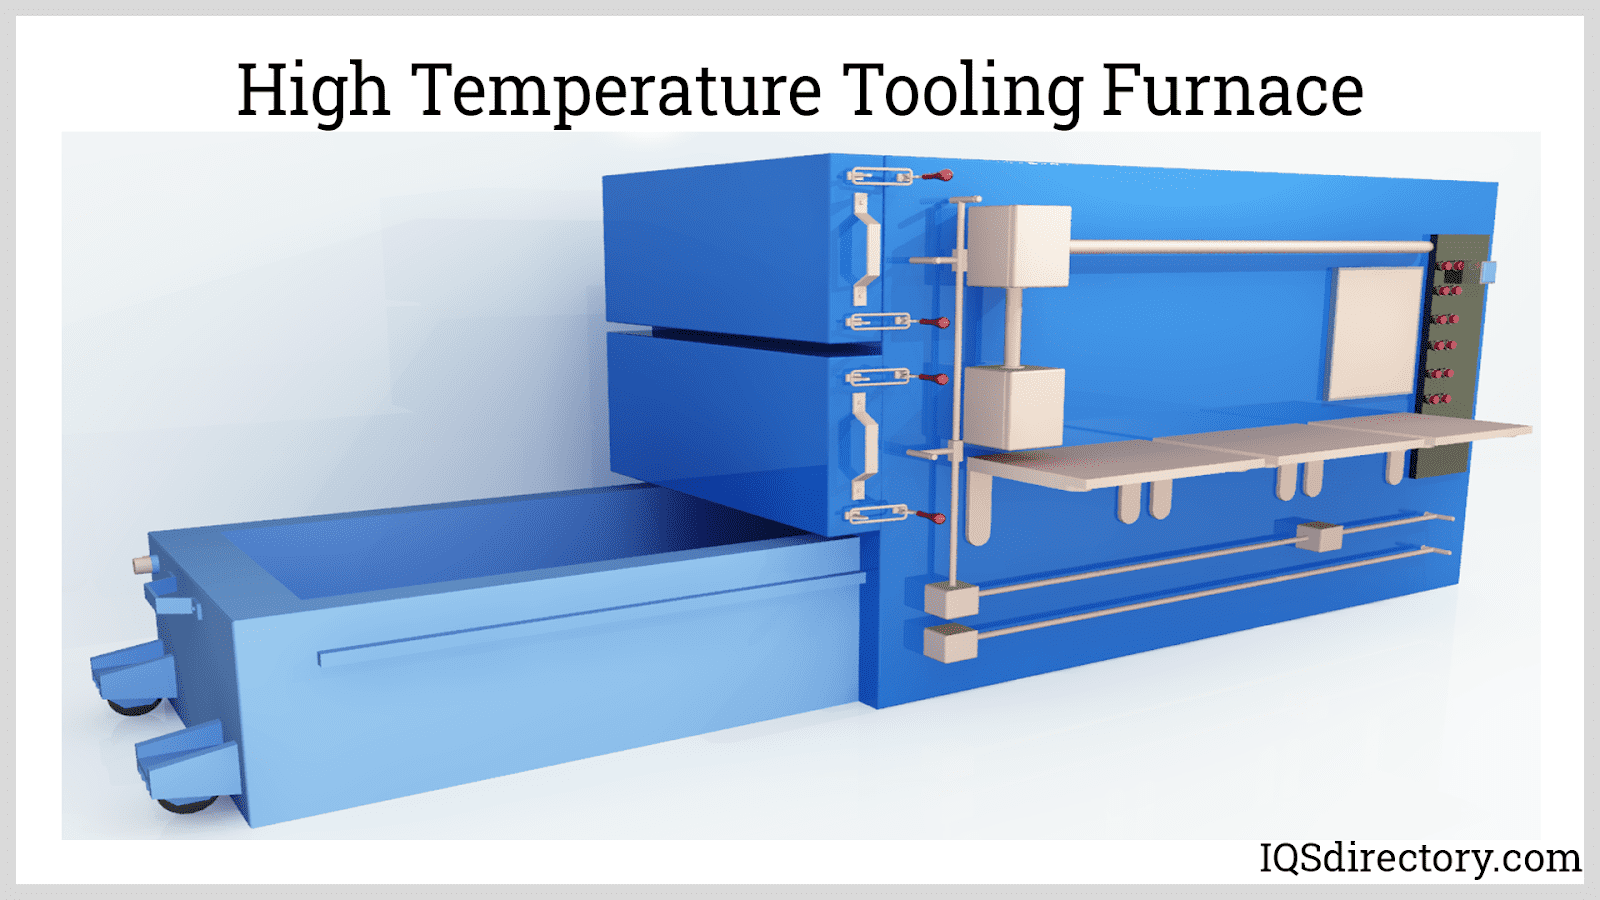 High Temperature Tooling Furnace